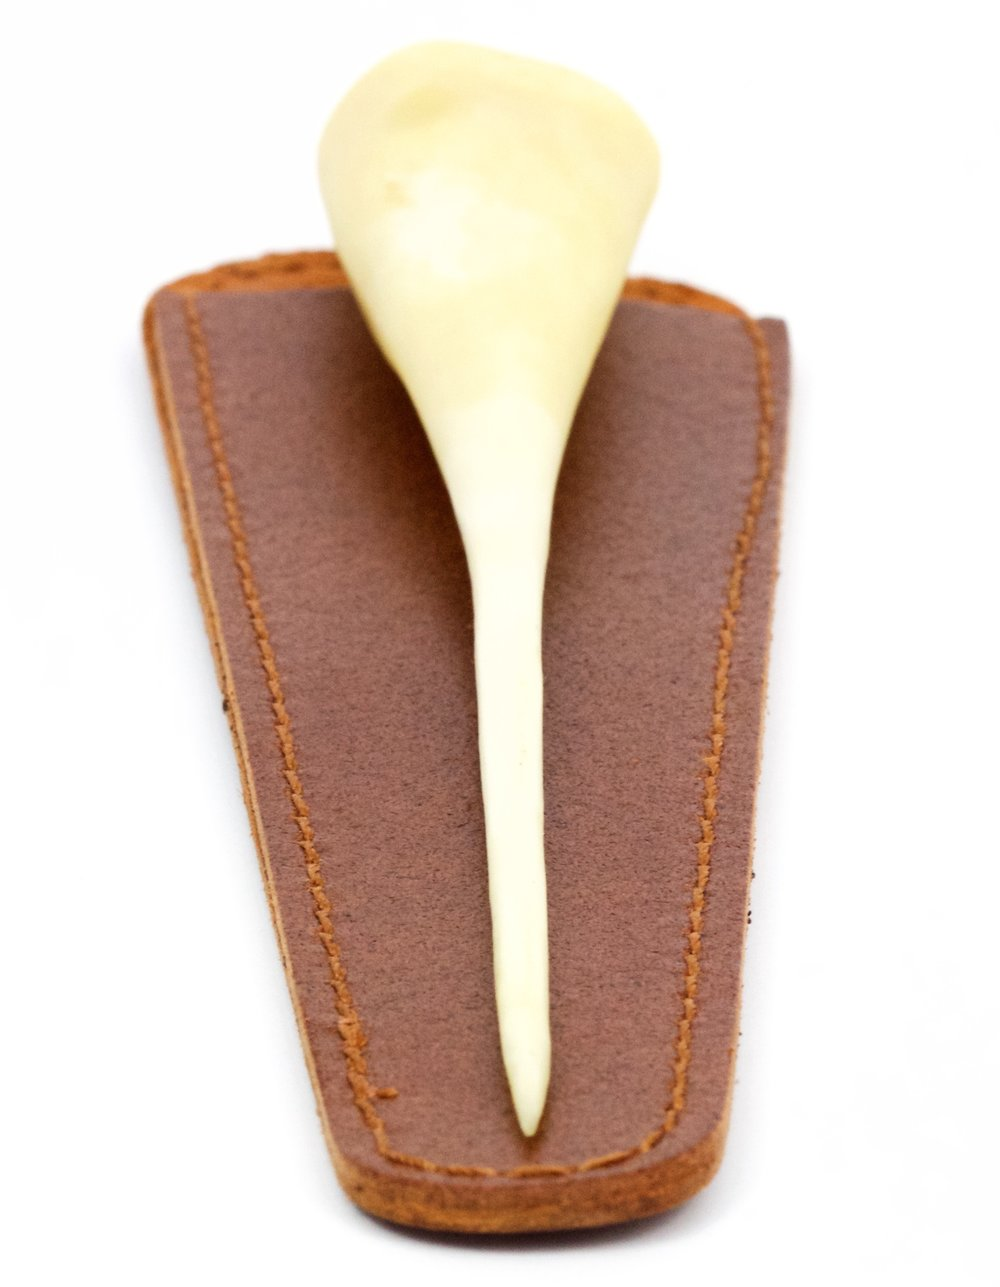 """Ago d'Osso di Cavallo - Authentic Horse Bone Needle from Parma with Italian Leather CaseUse """"AGO-FREE"""" in check out for the free USPS Express 1-2 Day Overnight Shipping during checkout!"""